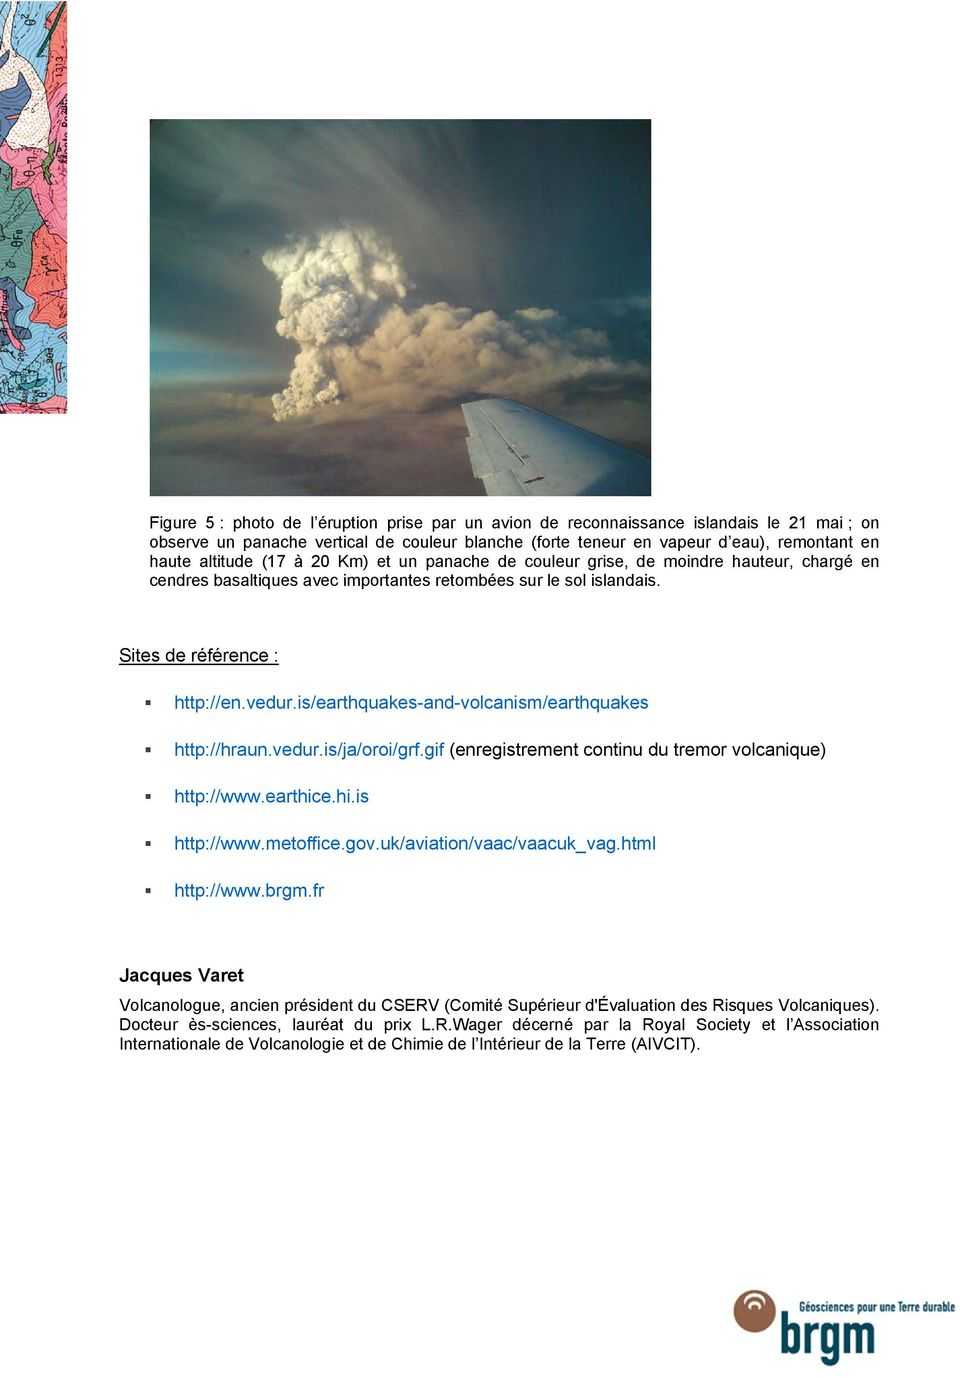 is/earthquakes-and-volcanism/earthquakes http://hraun.vedur.is/ja/oroi/grf.gif (enregistrement continu du tremor volcanique) http://www.earthice.hi.is http://www.metoffice.gov.